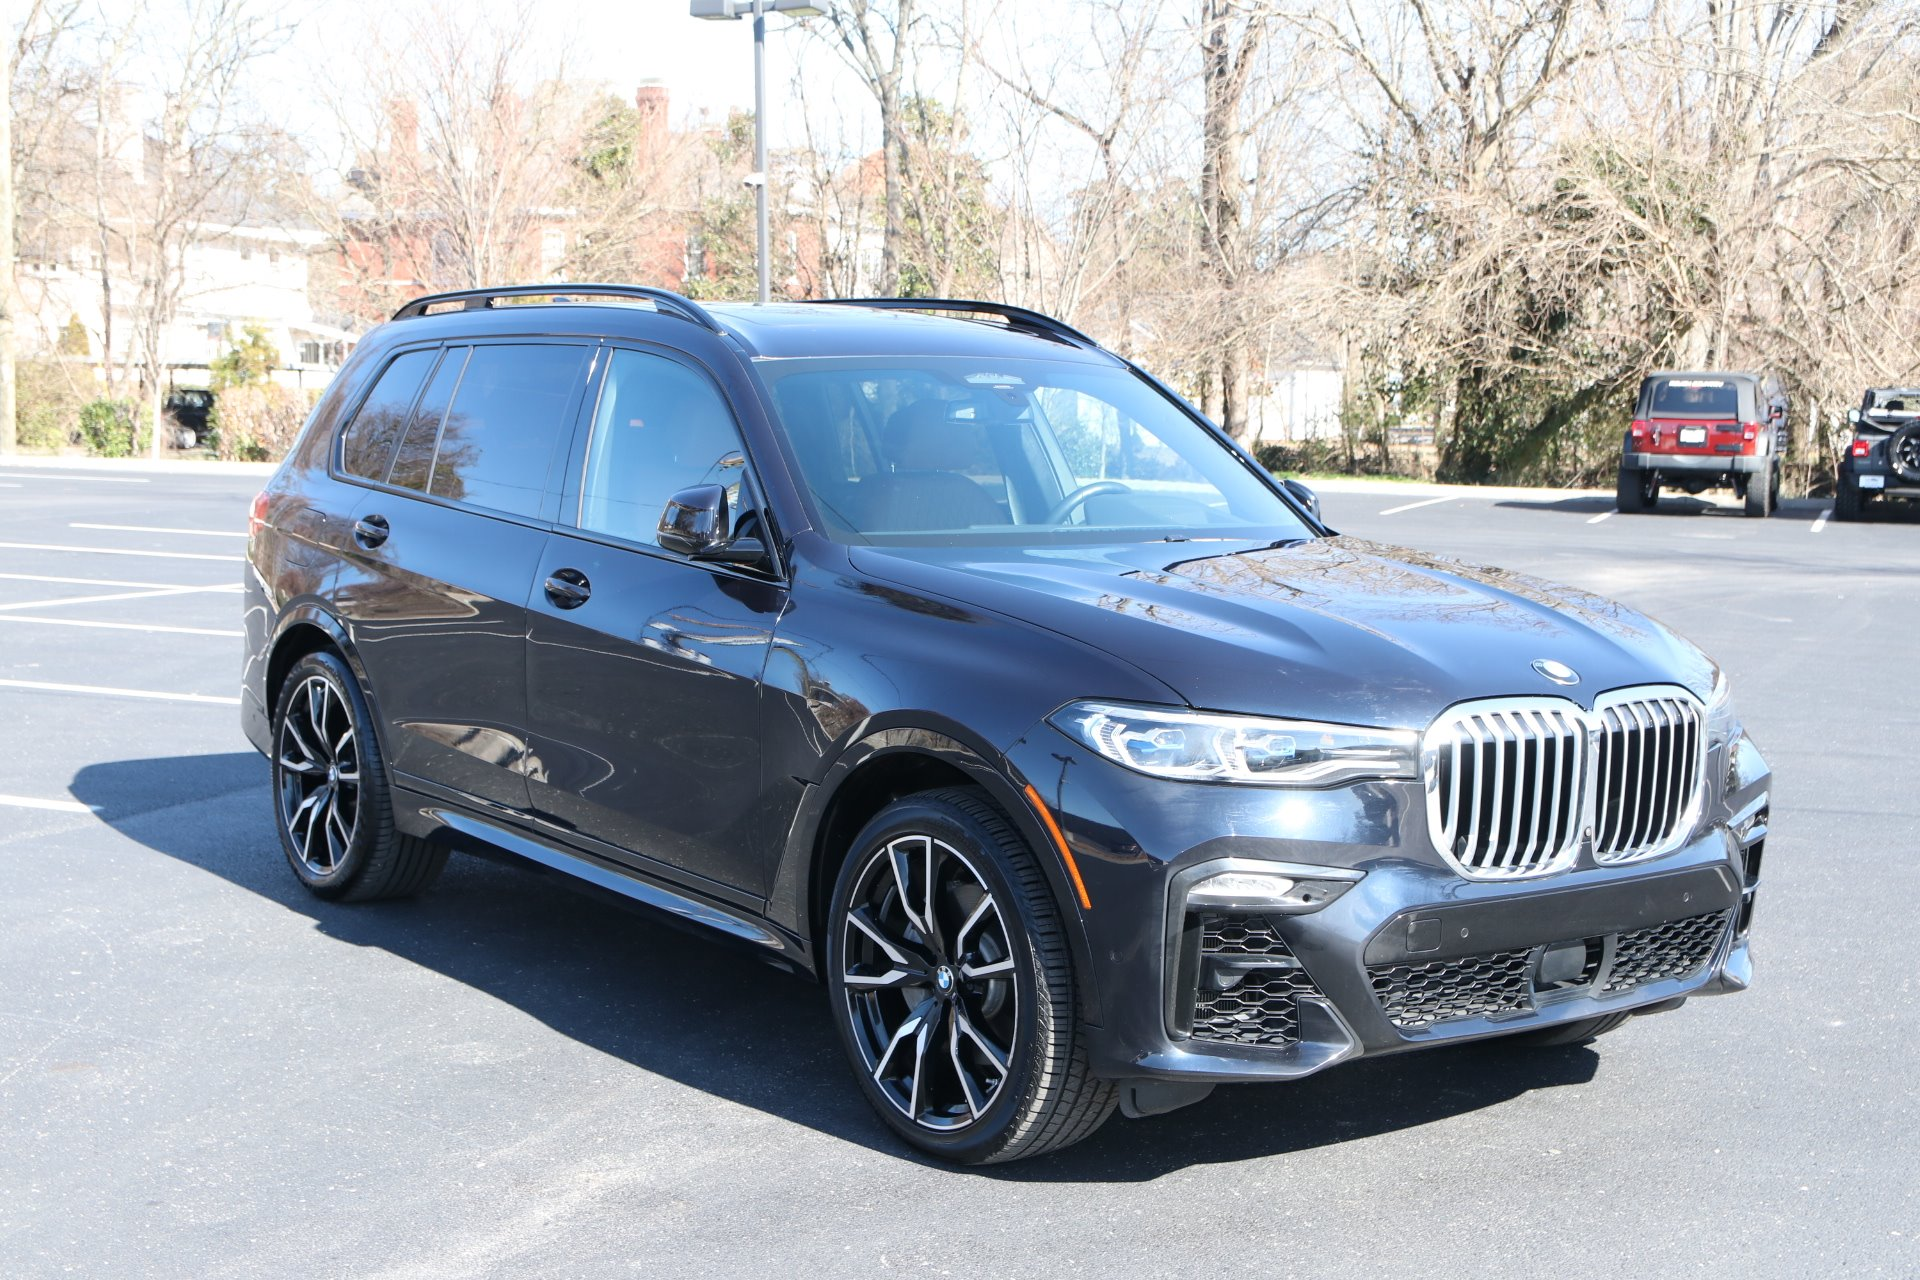 Used 2019 BMW X7 xDrive50I M Sport AWD W/NAV xDrive50i for sale Sold at Auto Collection in Murfreesboro TN 37129 1